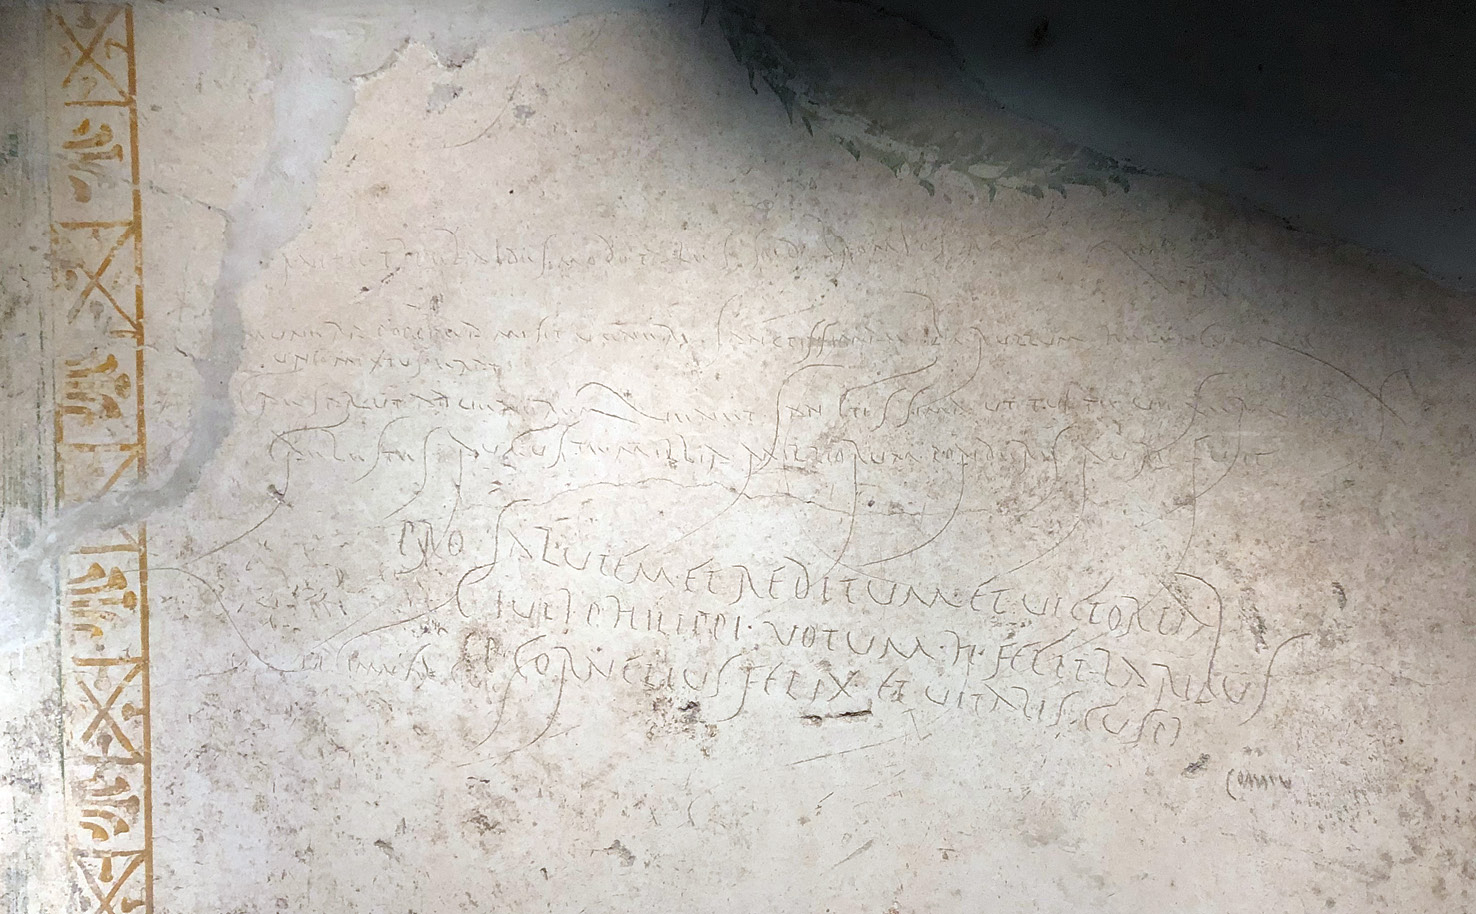 ABOVE Graffiti from the kitchen of the House of Gaius Iulius Polybius at Pompeii includes a poem praising Nero and Poppaea's offerings to Venus when they visited the city. It says, 'Poppaea sent as gifts to most holy Venus a beryl, an ear-drop pearl, and a large single pearl. When Caesar came to most holy Venus and when your heavenly feet brought you there, Augustus, there was a countless weight of gold'. That the poem remained in place after Nero's death probably tells us something about how the emperor was regarded locally.